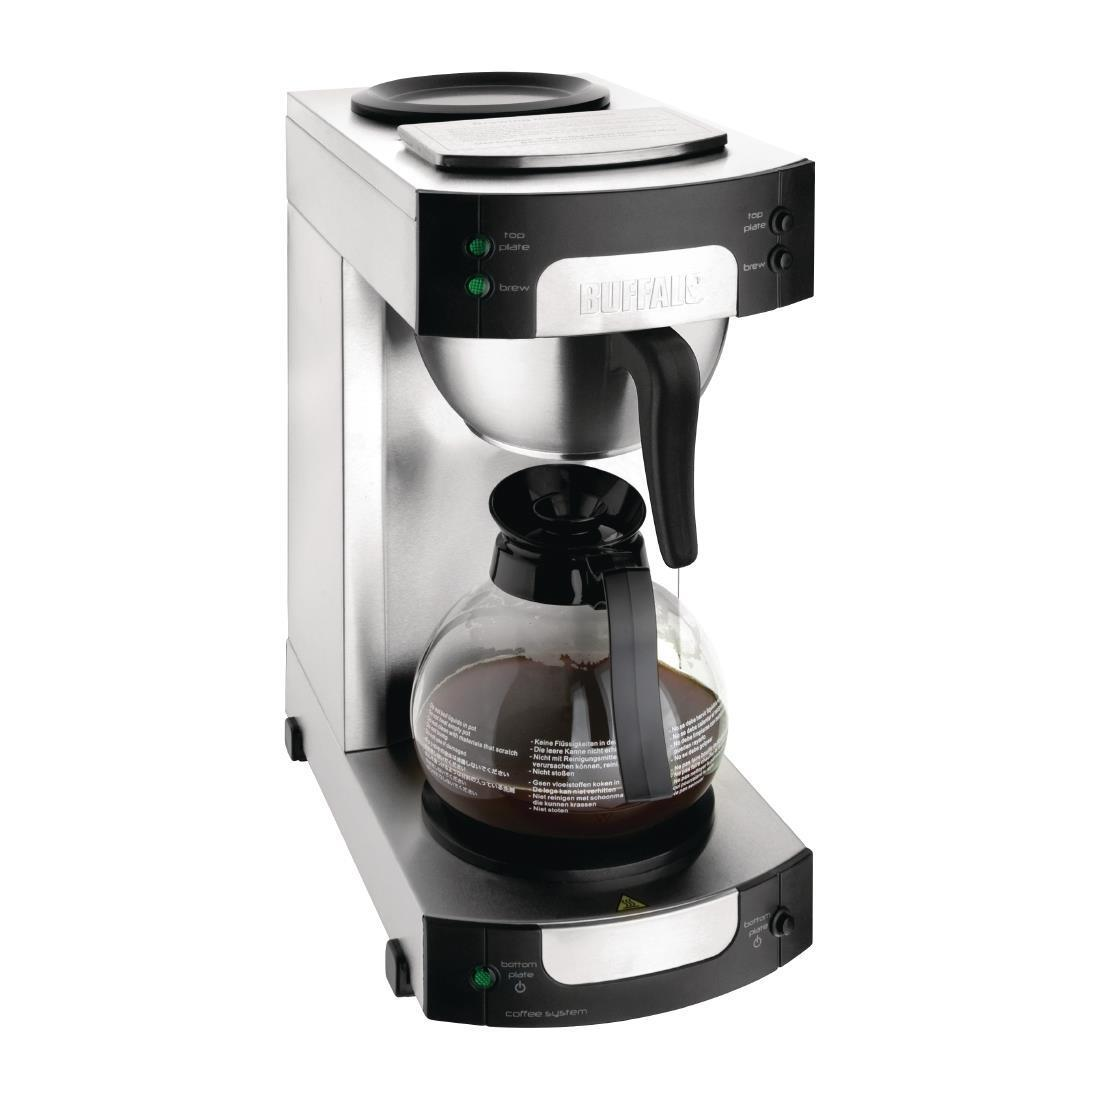 Buffalo Filter Coffee Maker - CW305